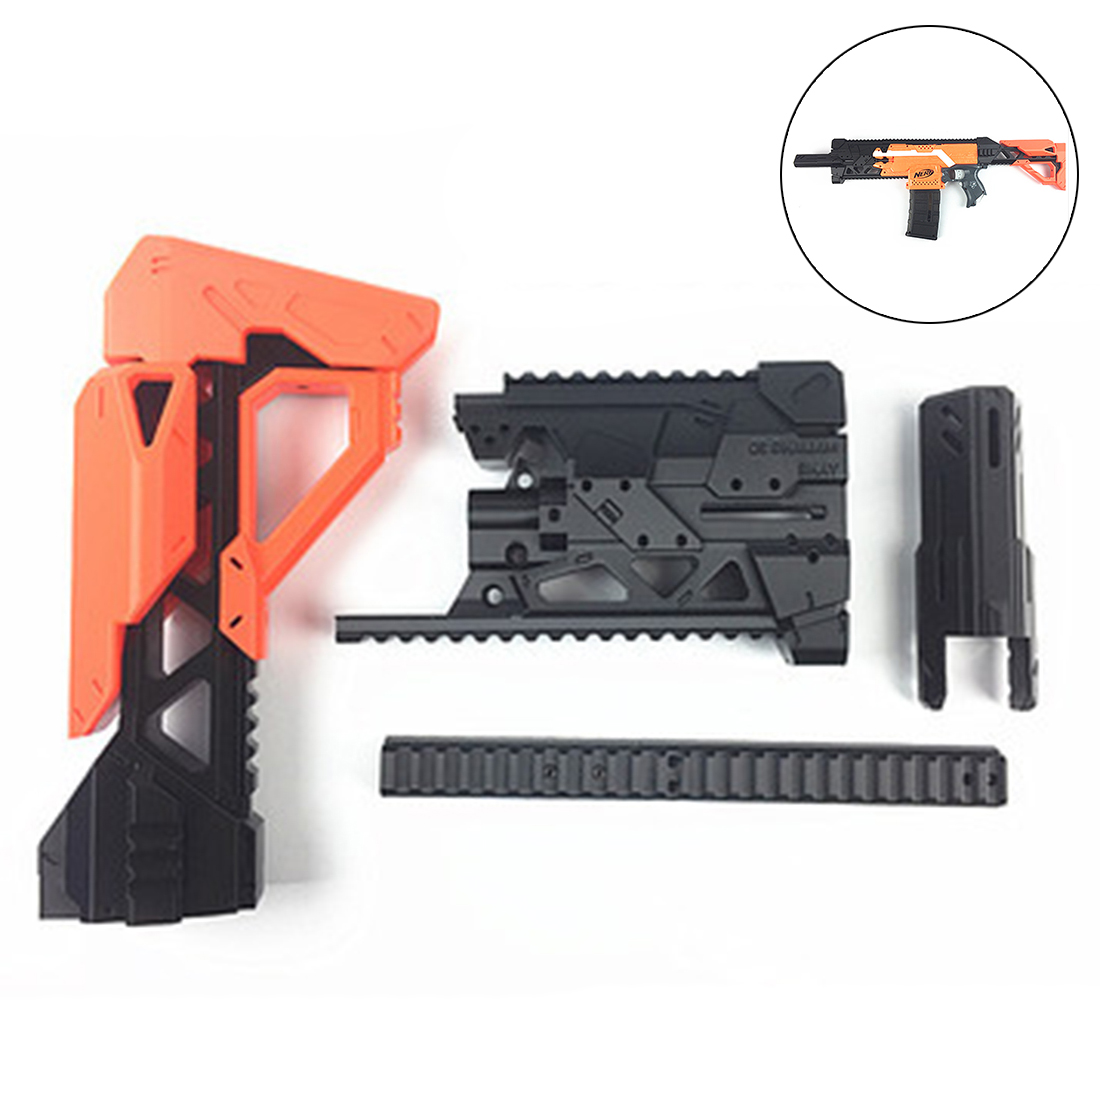 Maliang 3D Printing A0711 Science Fiction Style S2 Modified Kit for Nerf Stryfe